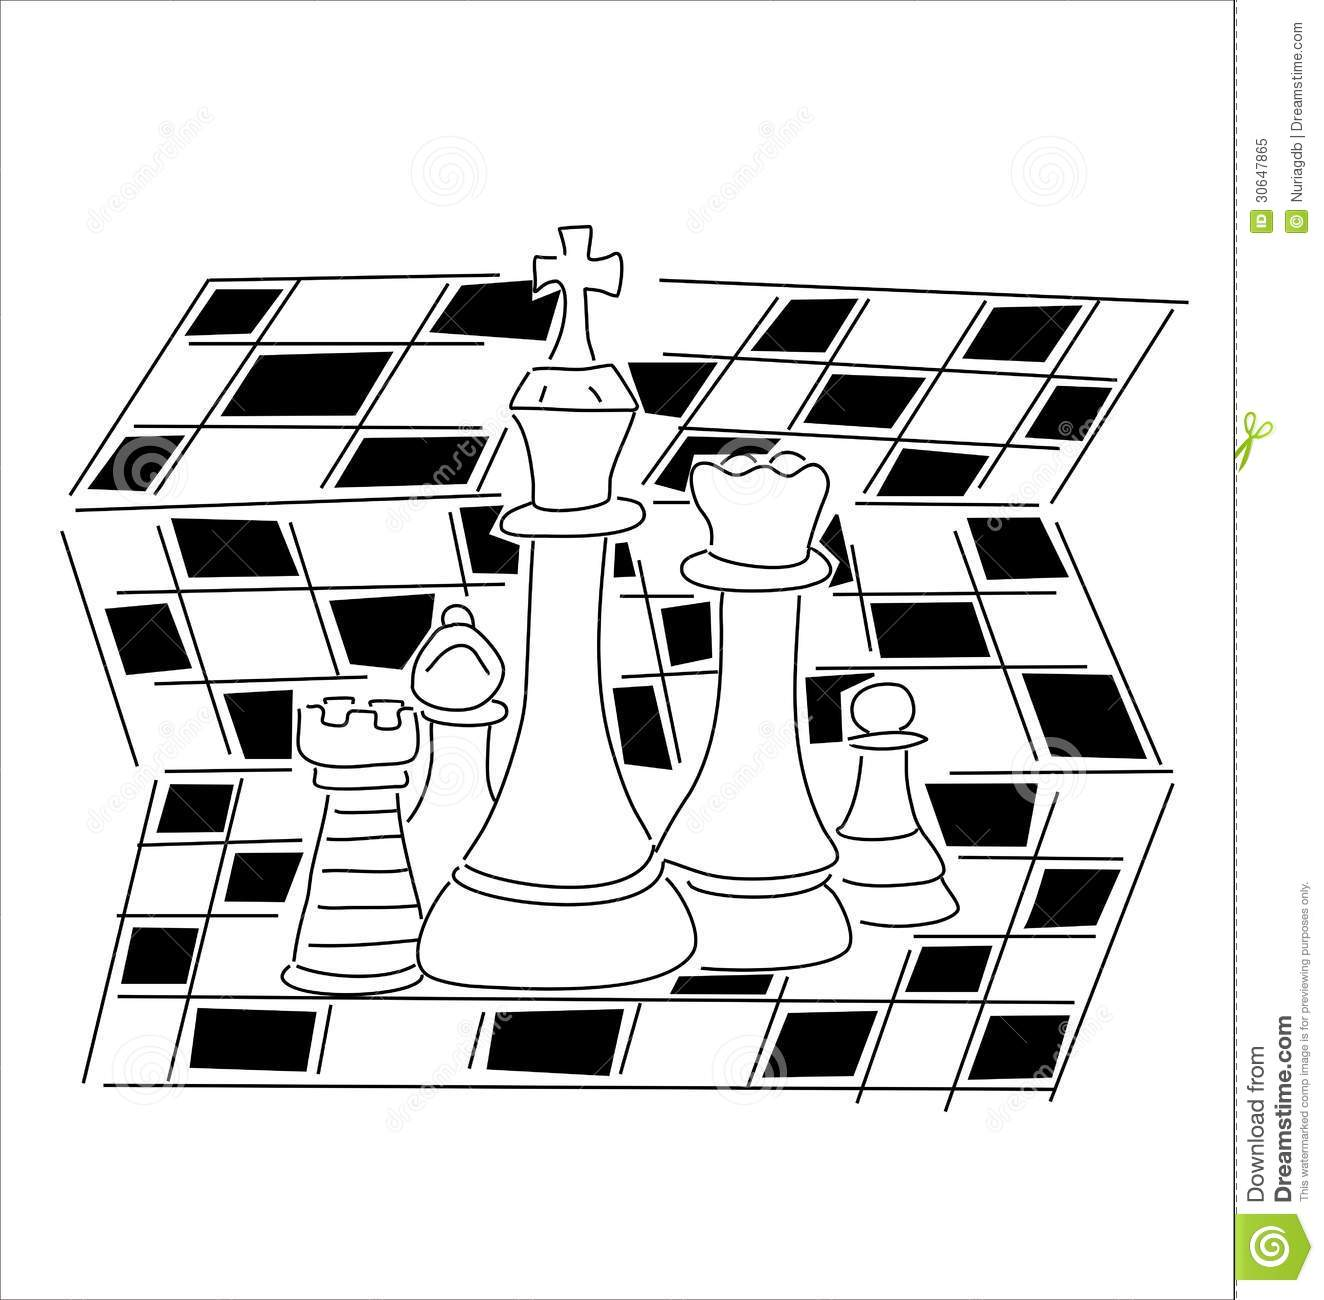 chess dating service Play chess on chesscom - the #1 chess community with +20 million members around the world play online with friends, challenge the computer, join a club, solve puzzles, analyze your games, and learn from hundreds of video lessons.